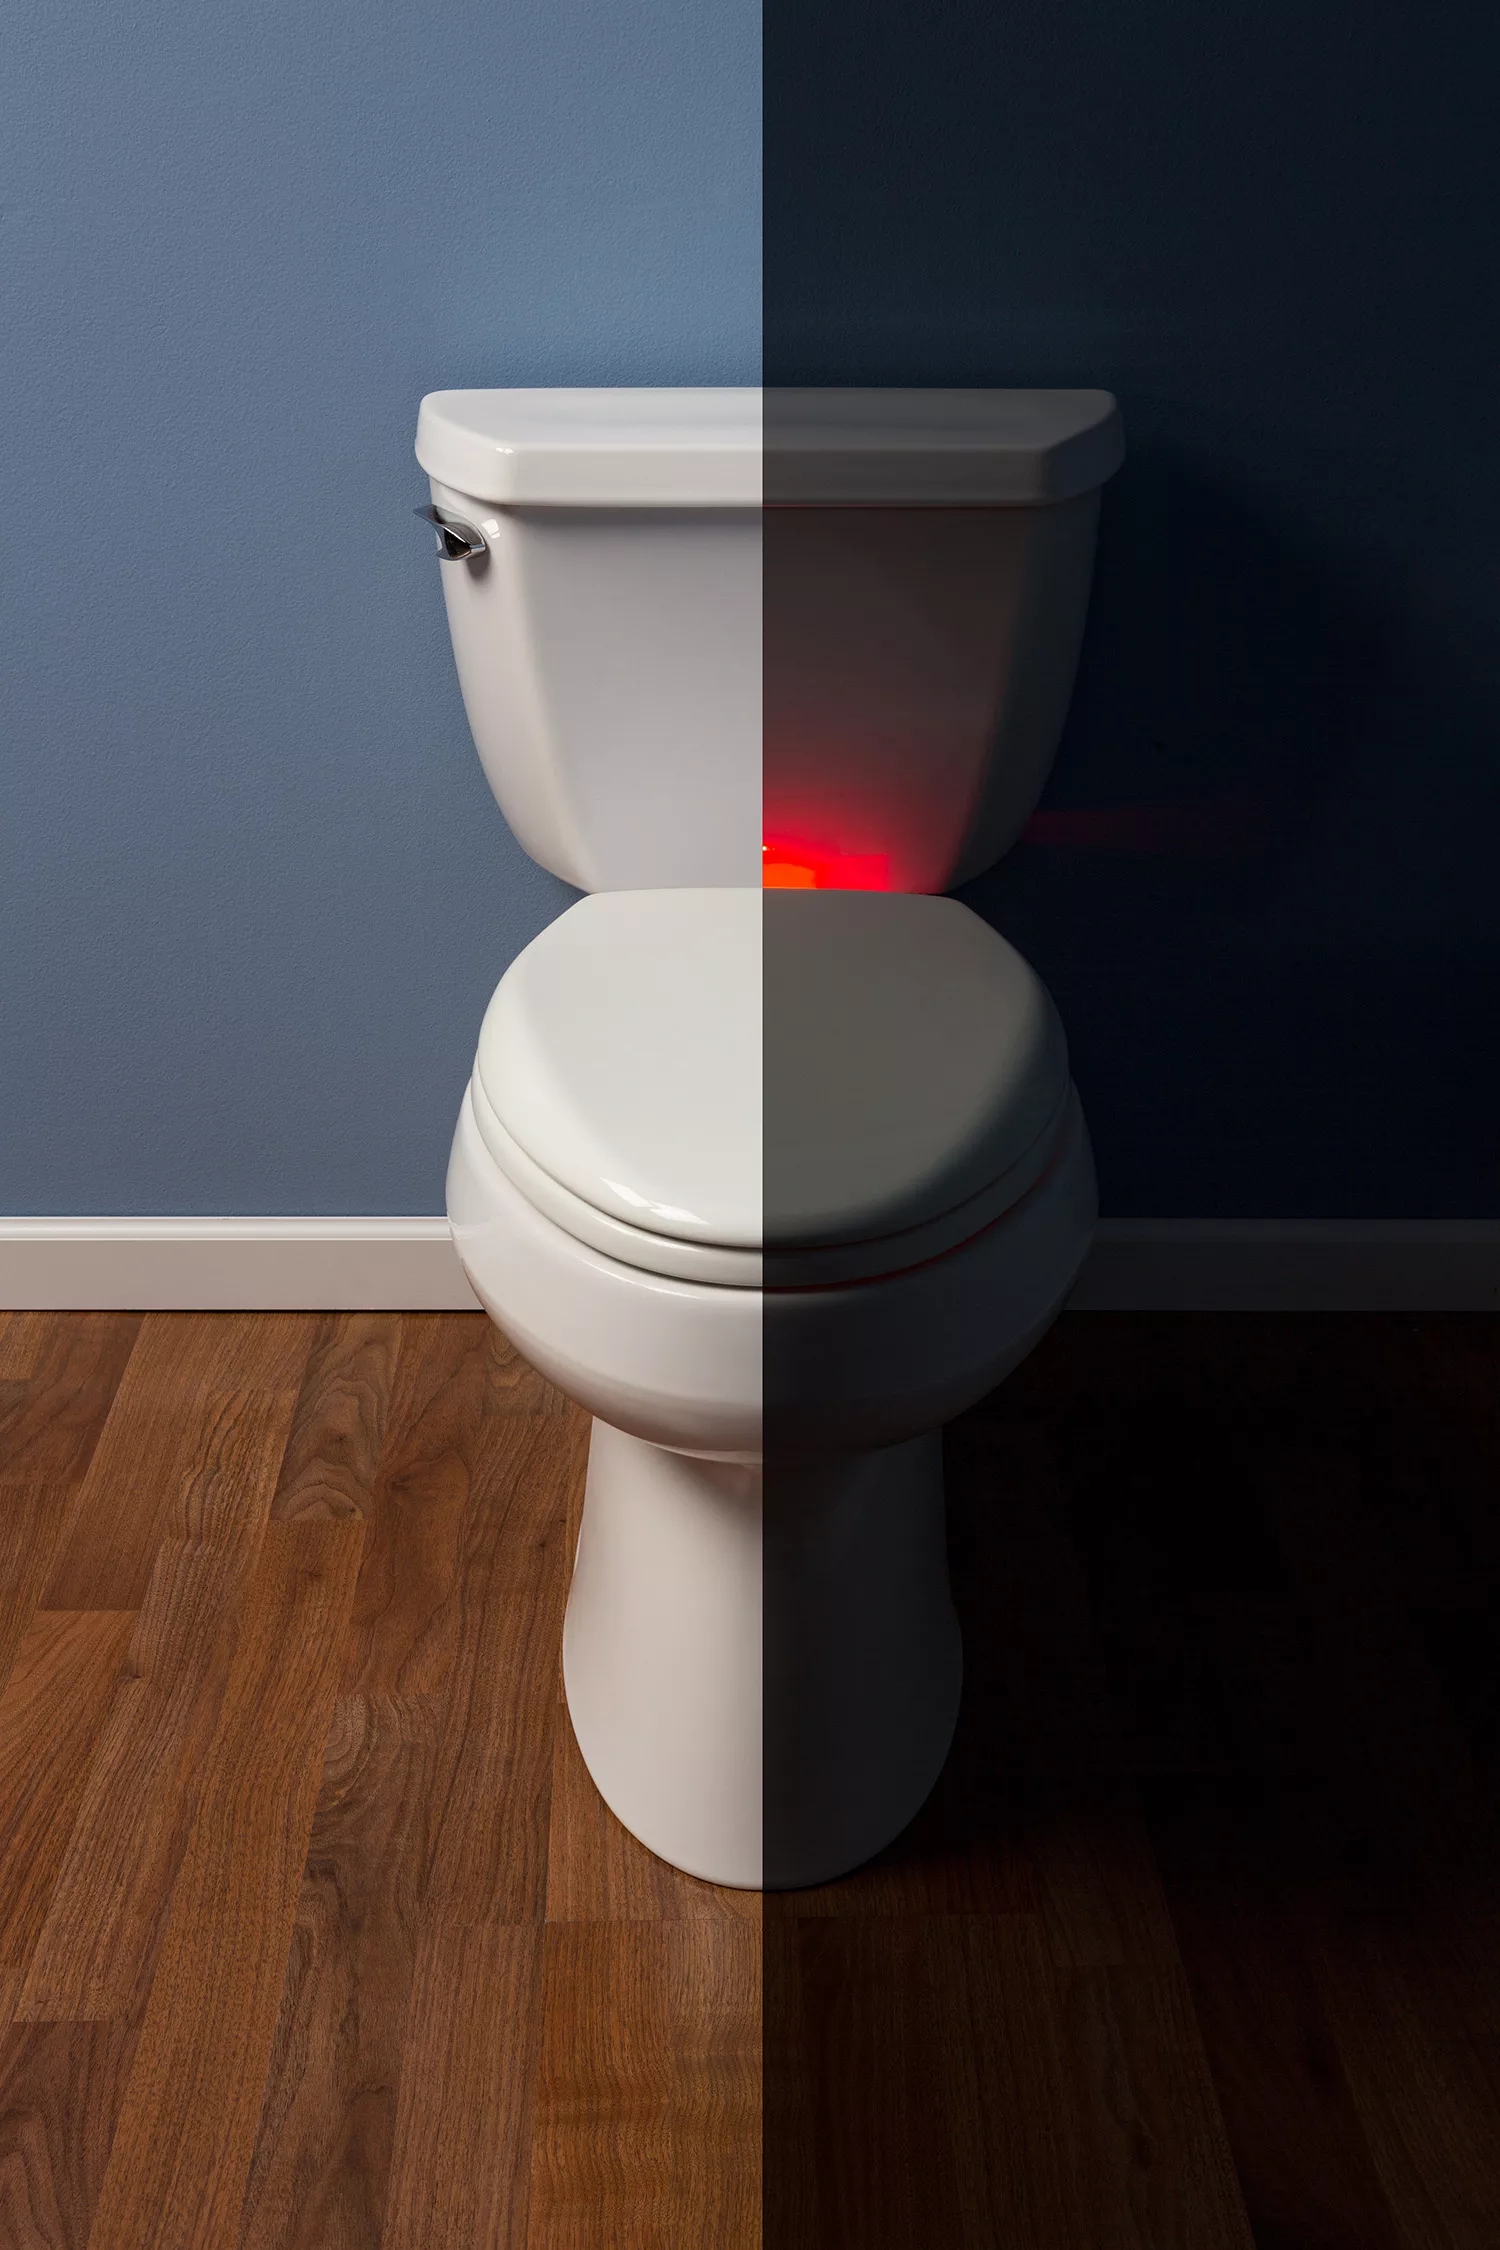 This Toilet Seat With Nightlight Creates A Soft Guiding Glow So